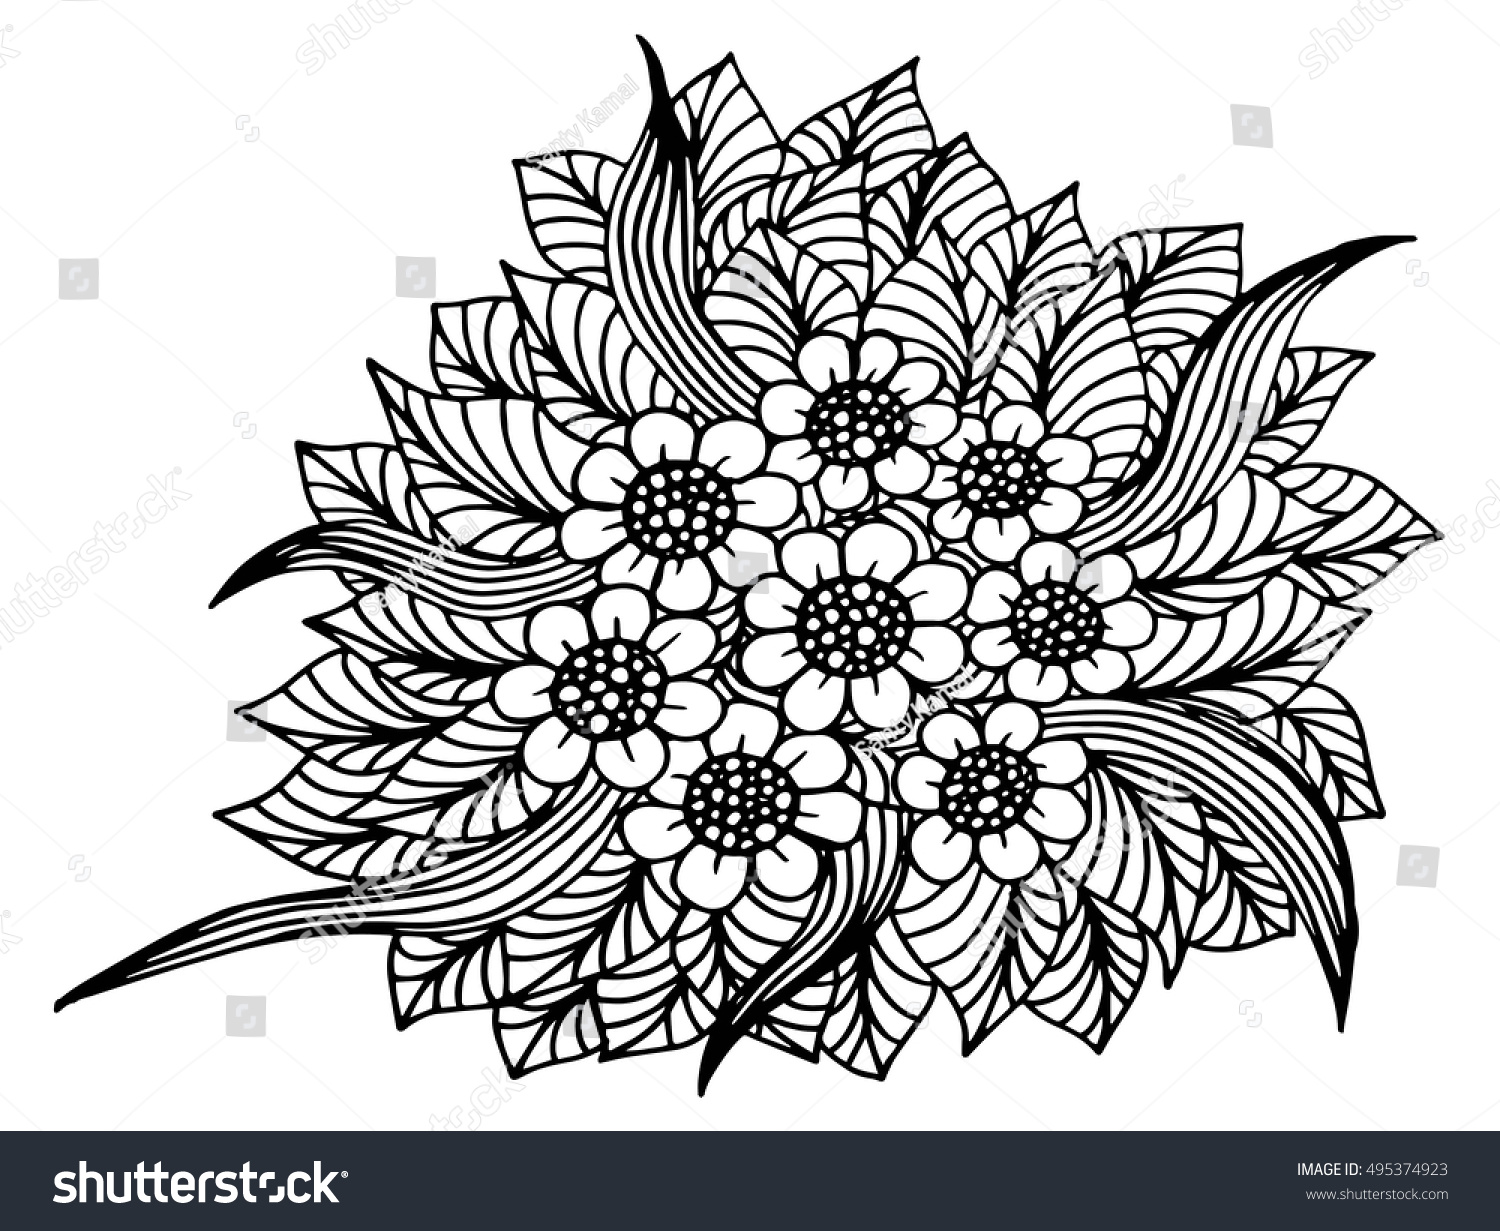 Hand Drawn Floral Doodle Coloring Pages Stock Vector